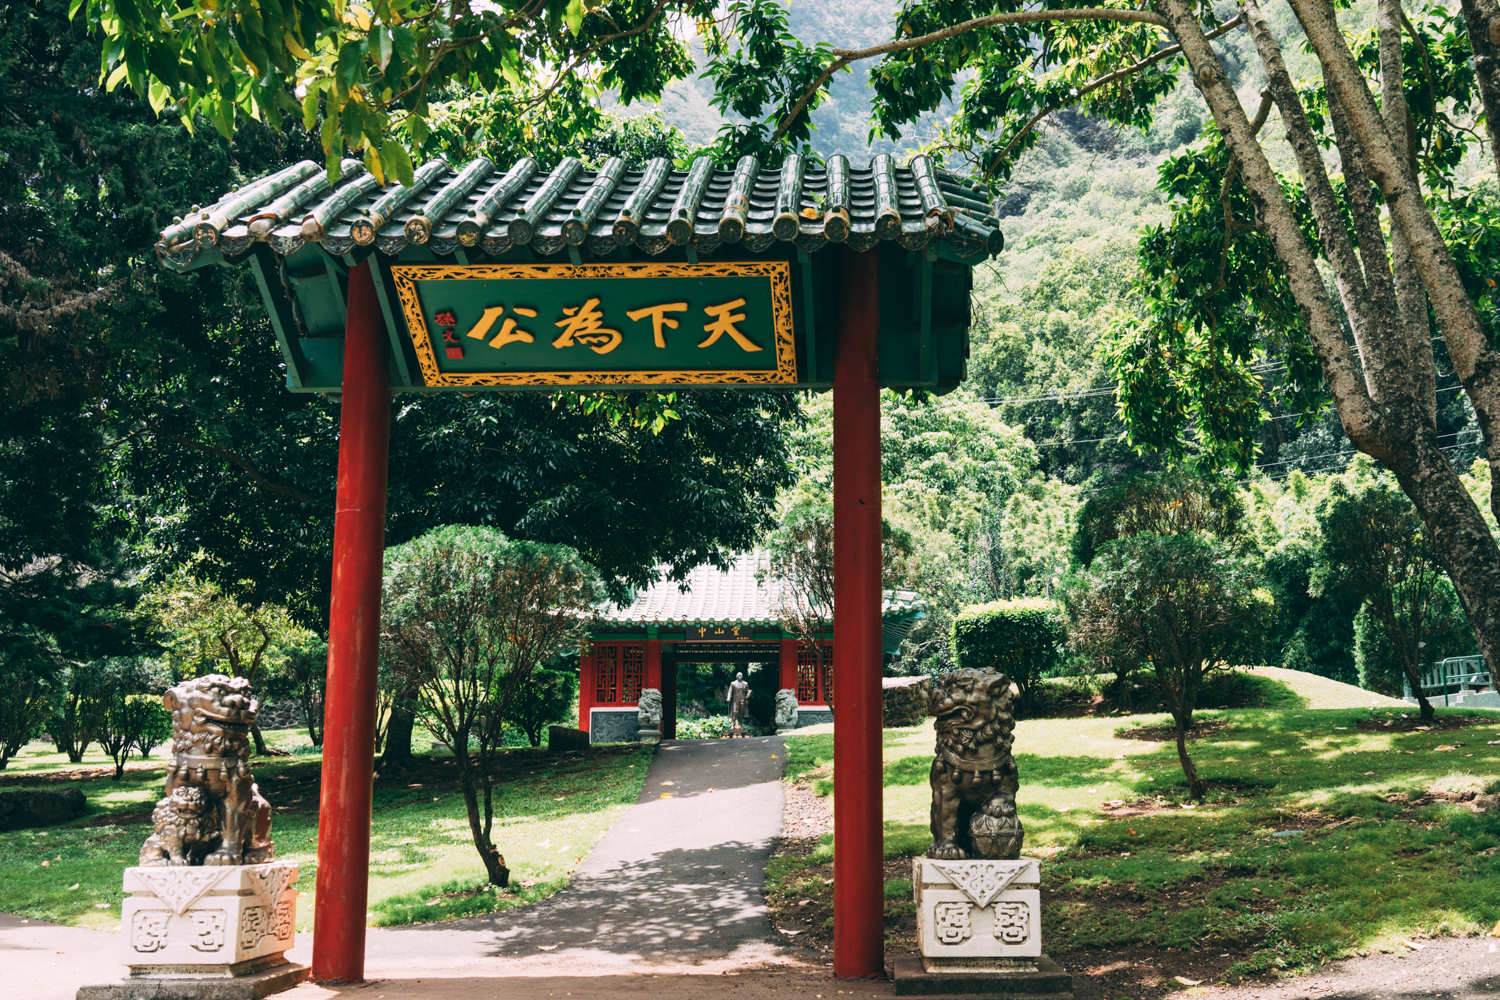 Entrance to the Japanese Garden